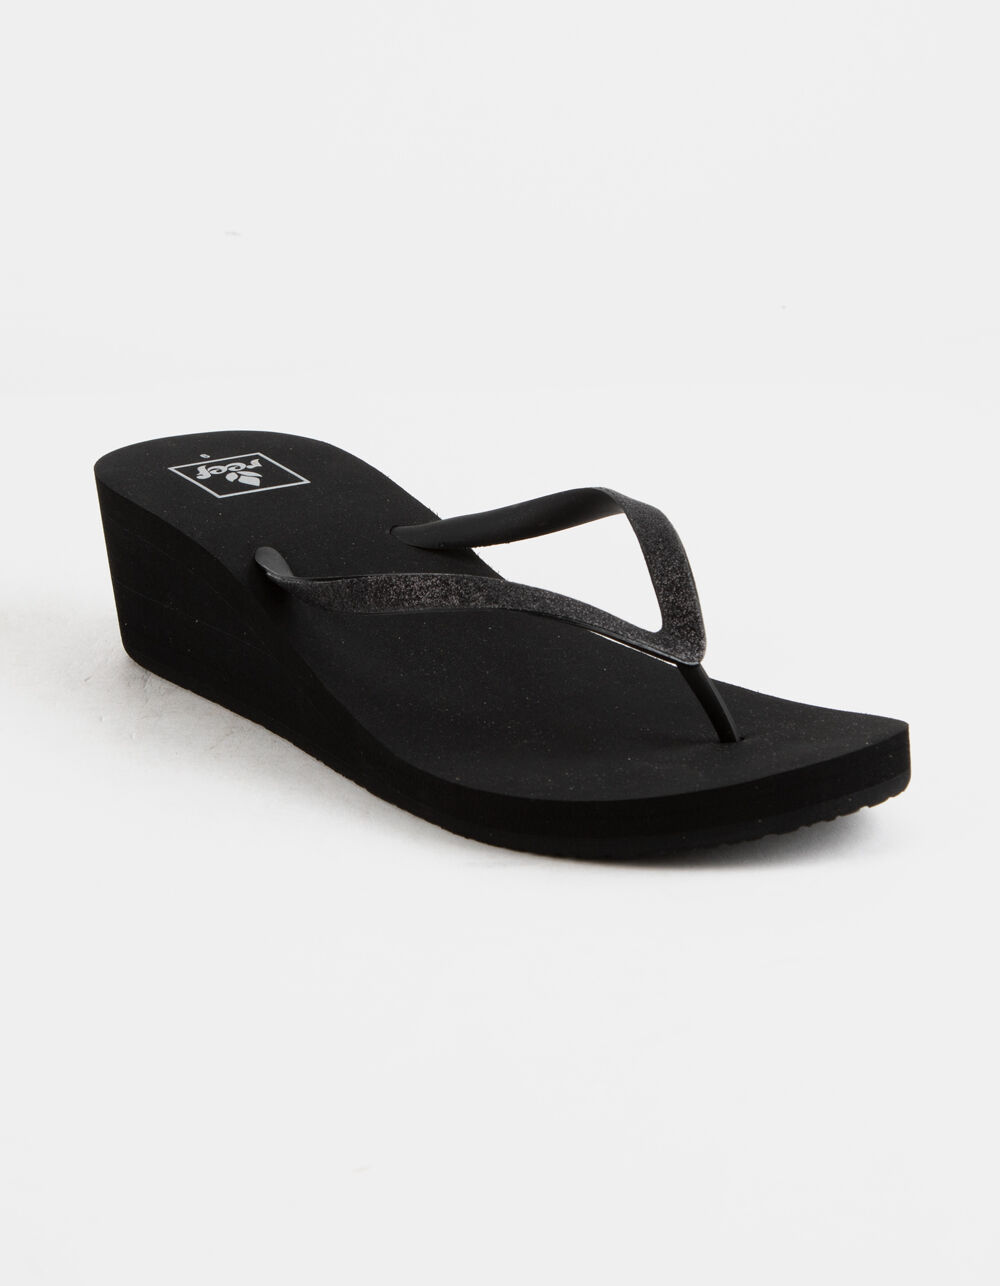 REEF Krystal Star Sandals